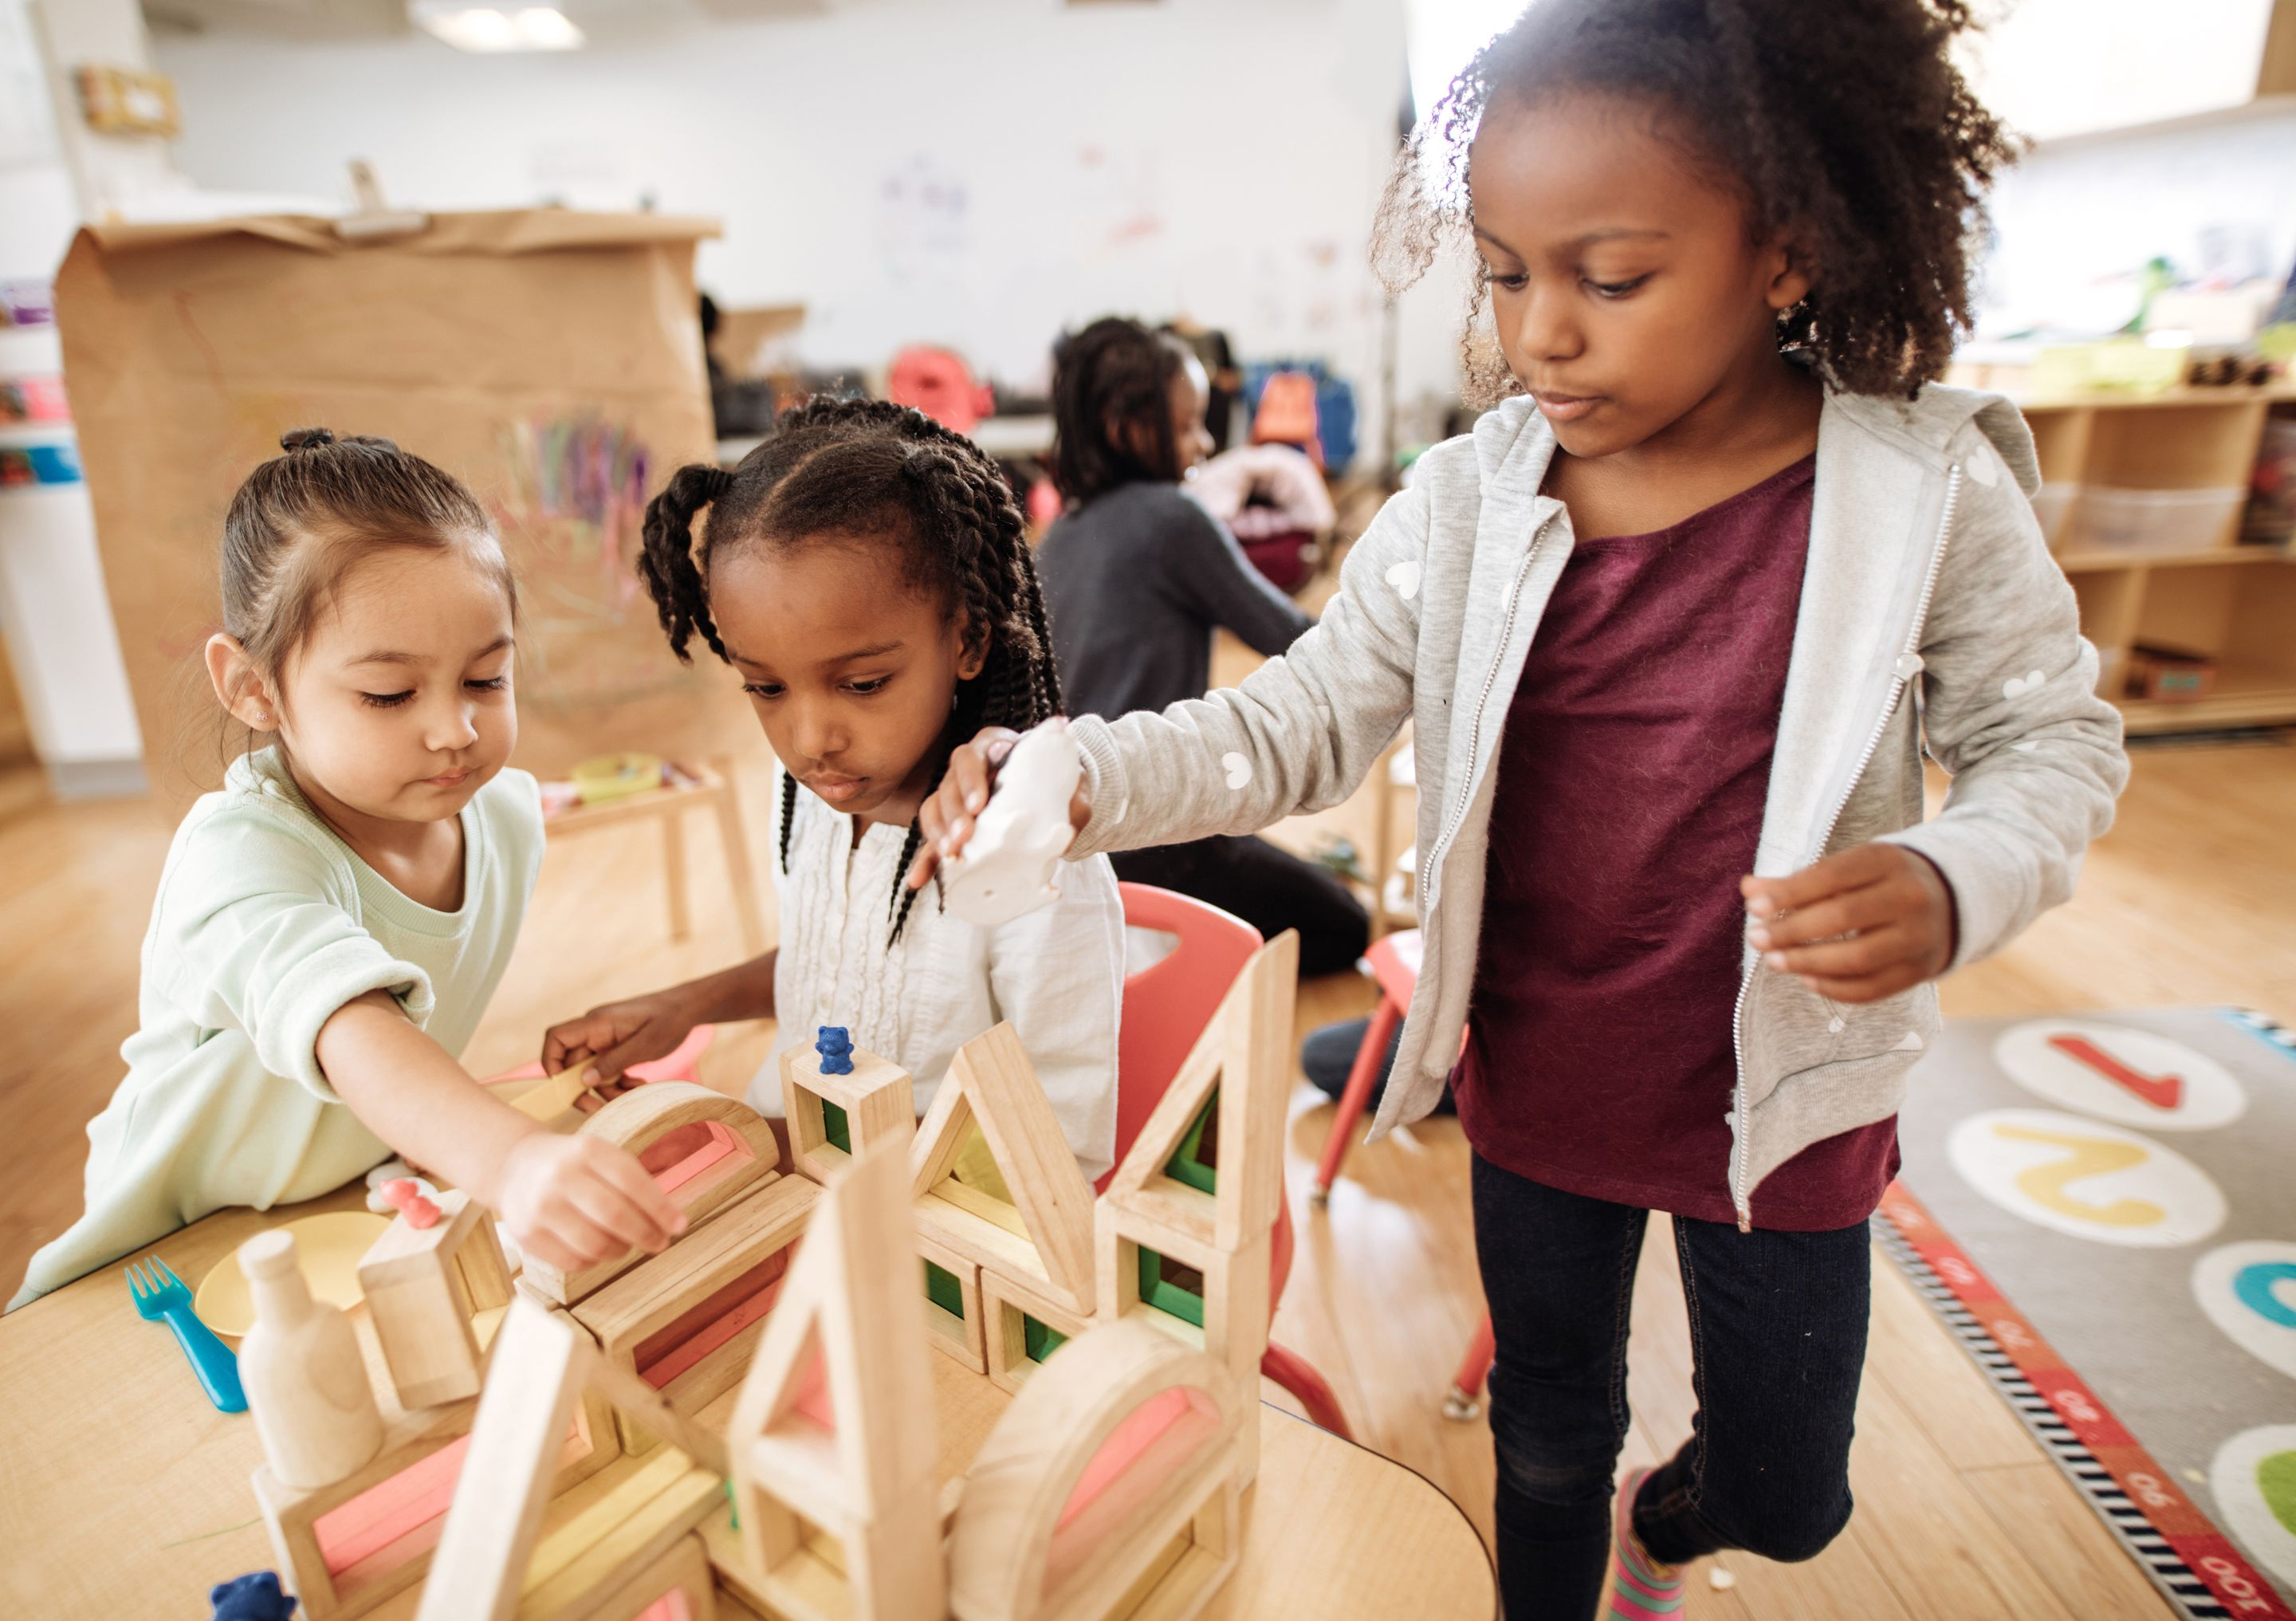 A group of young children building a house out of blocks together in a classroom